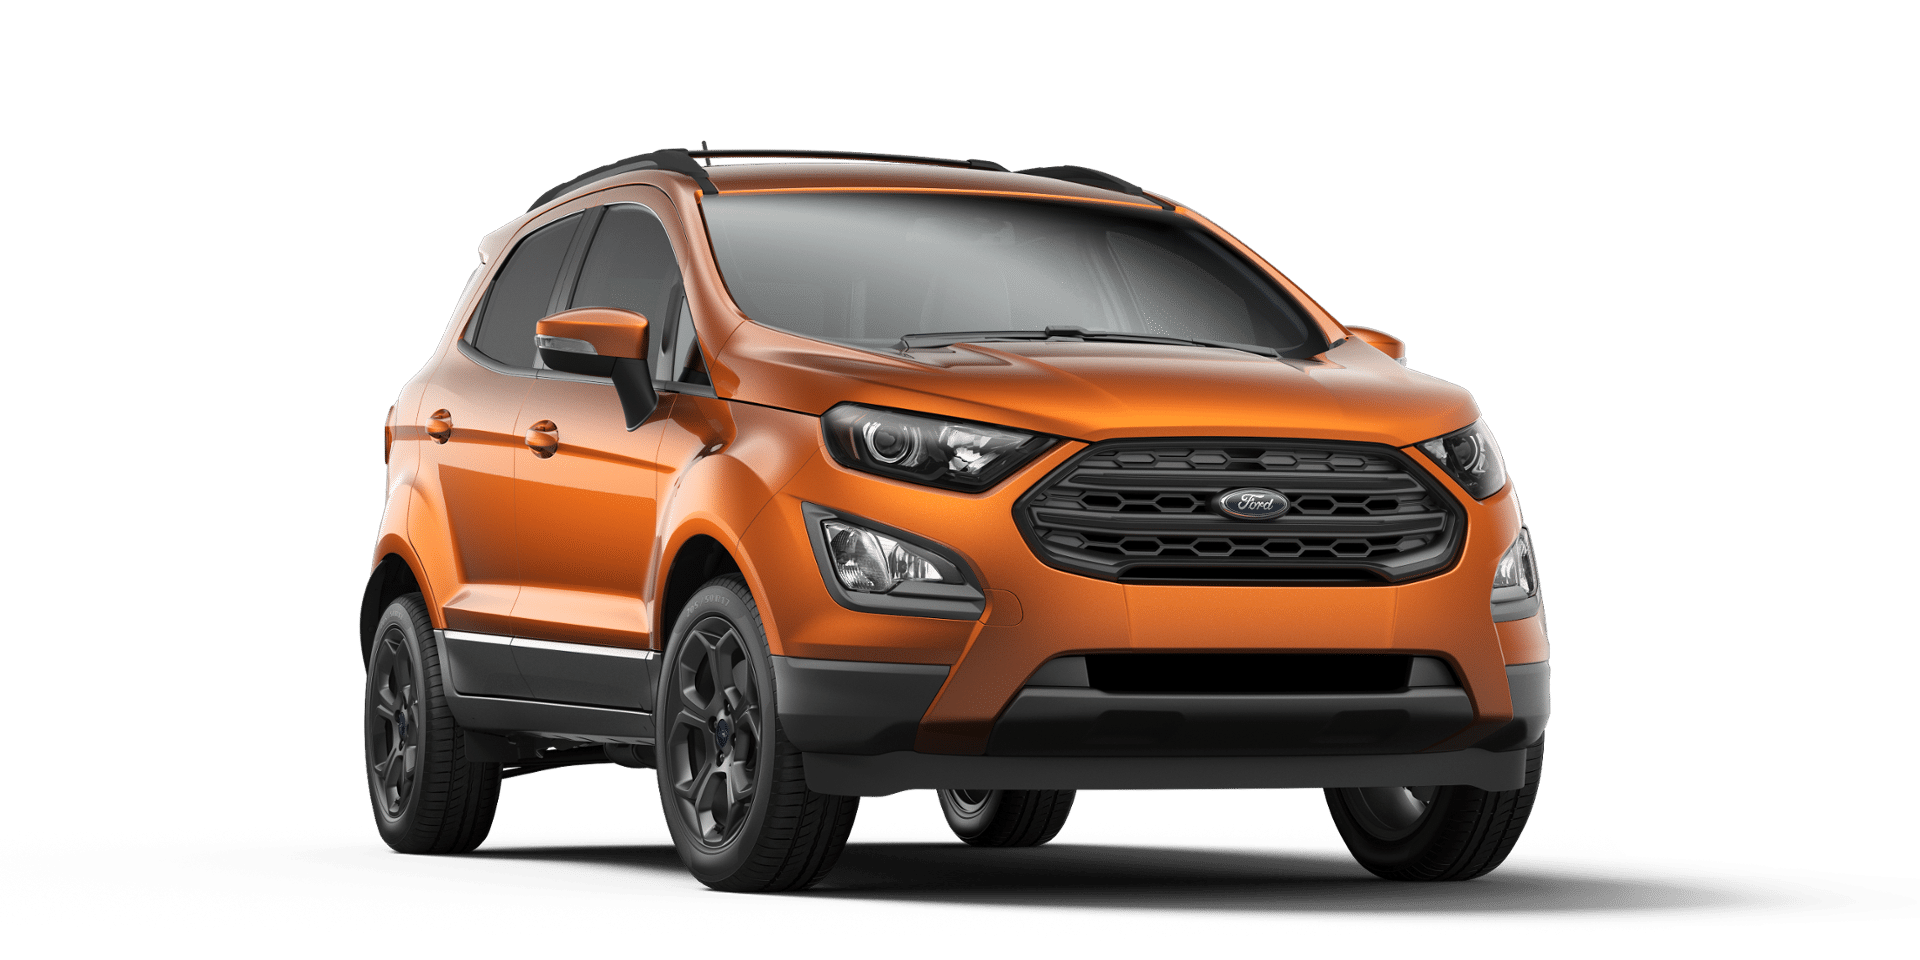 Pin By Holly Reams On Stuff I Like Ford Ecosport Ford Car Ford